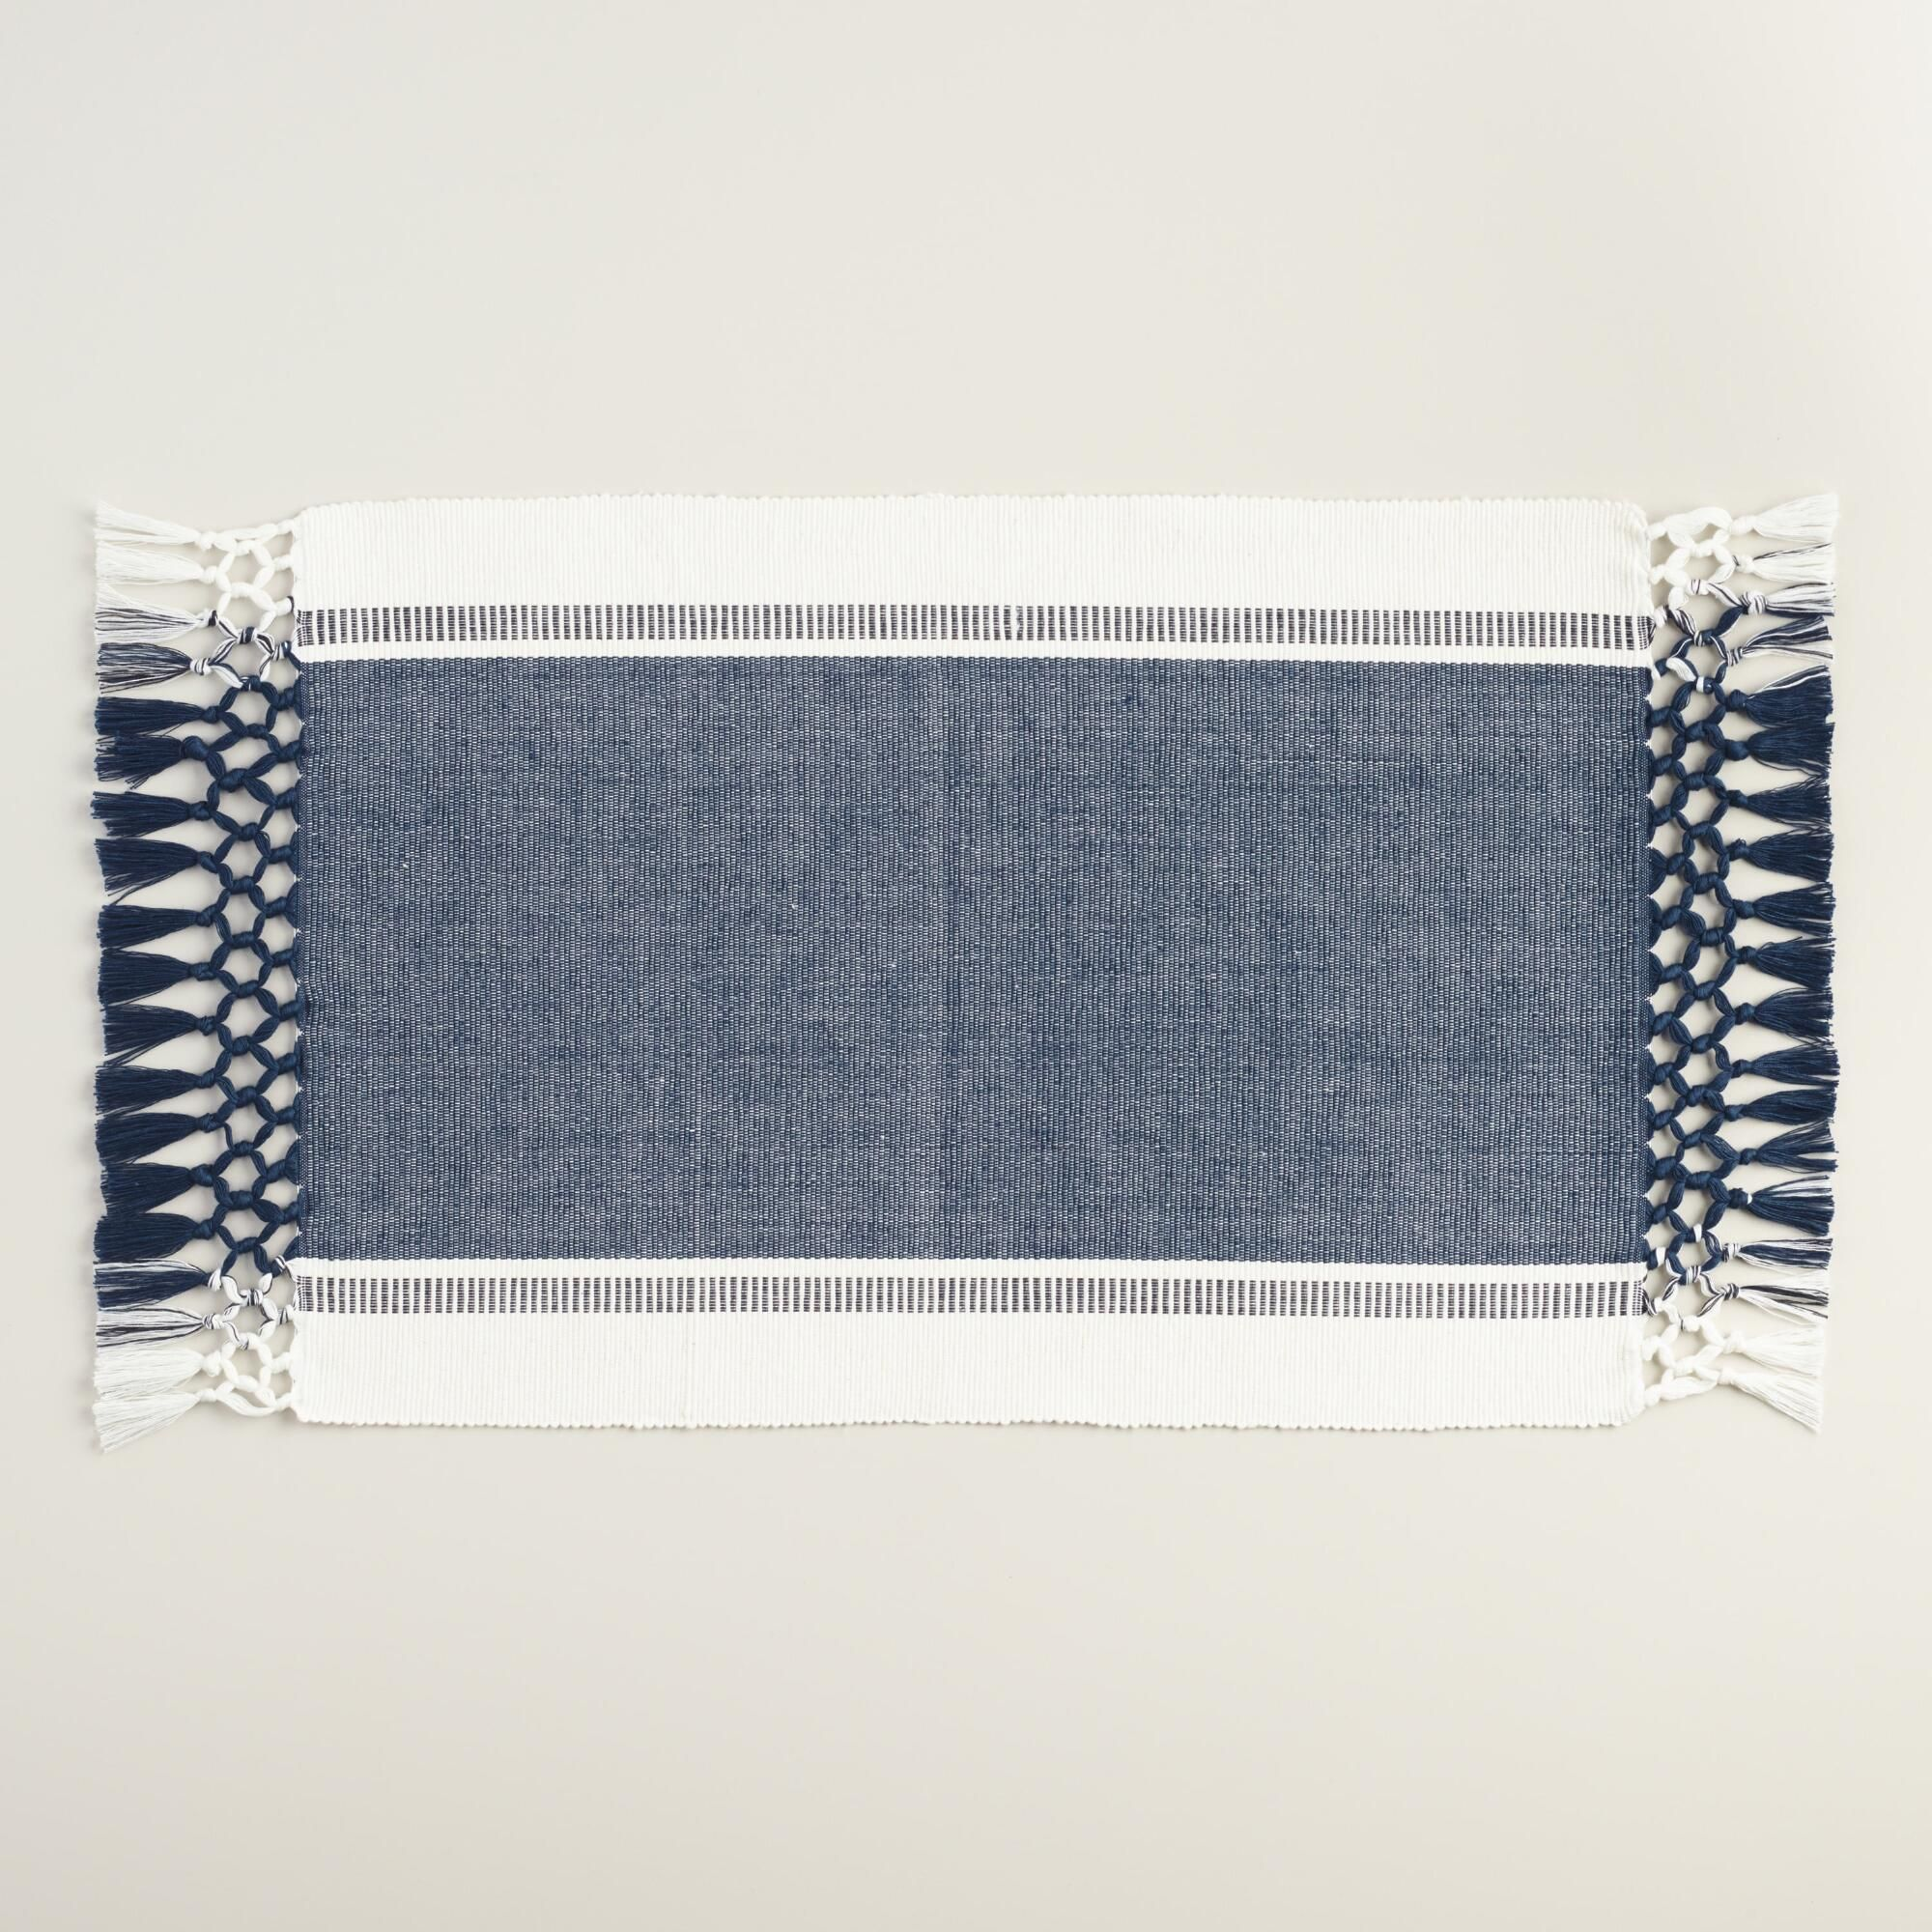 Set Out These Americana Woven Placemats At Your Next Summer Gathering Their Denim Blue And White Color Blocking Triple Knotted Fringe Has A Way Of